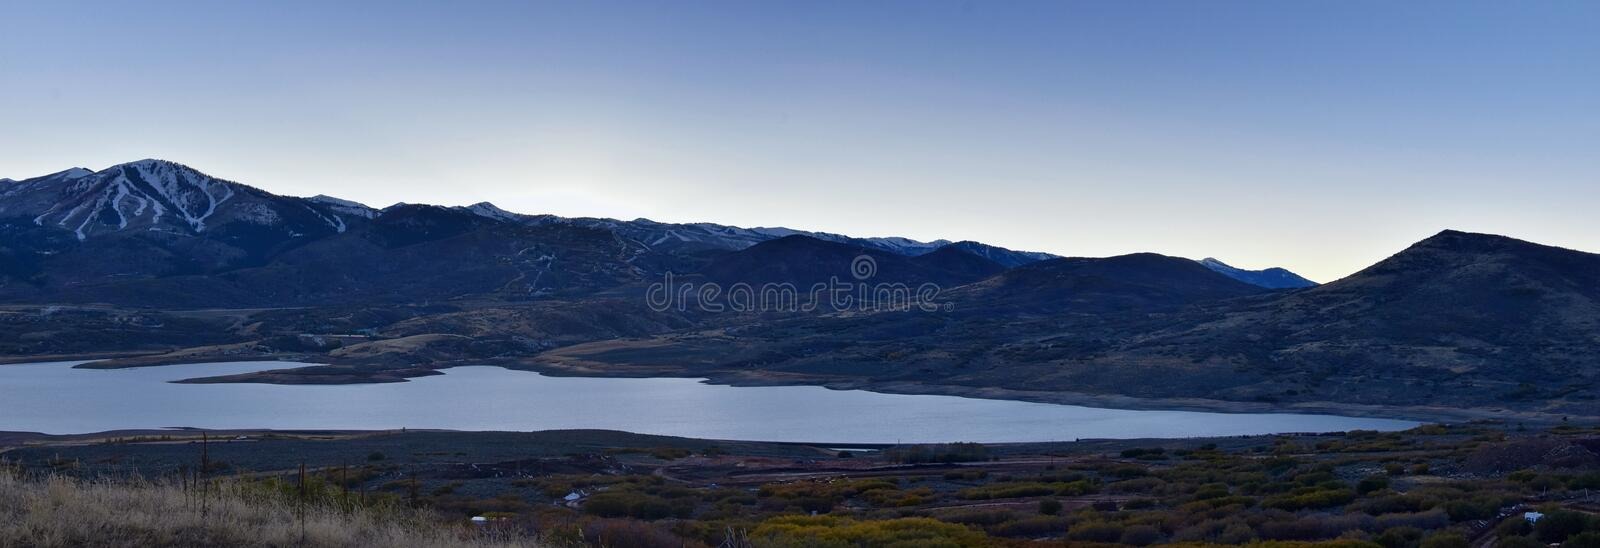 Panoramic Landscape view Jordanelle Reservoir off Utah Highway 248, in the Wasatch back Rocky Mountains, and Cloudscape. America royalty free stock photos